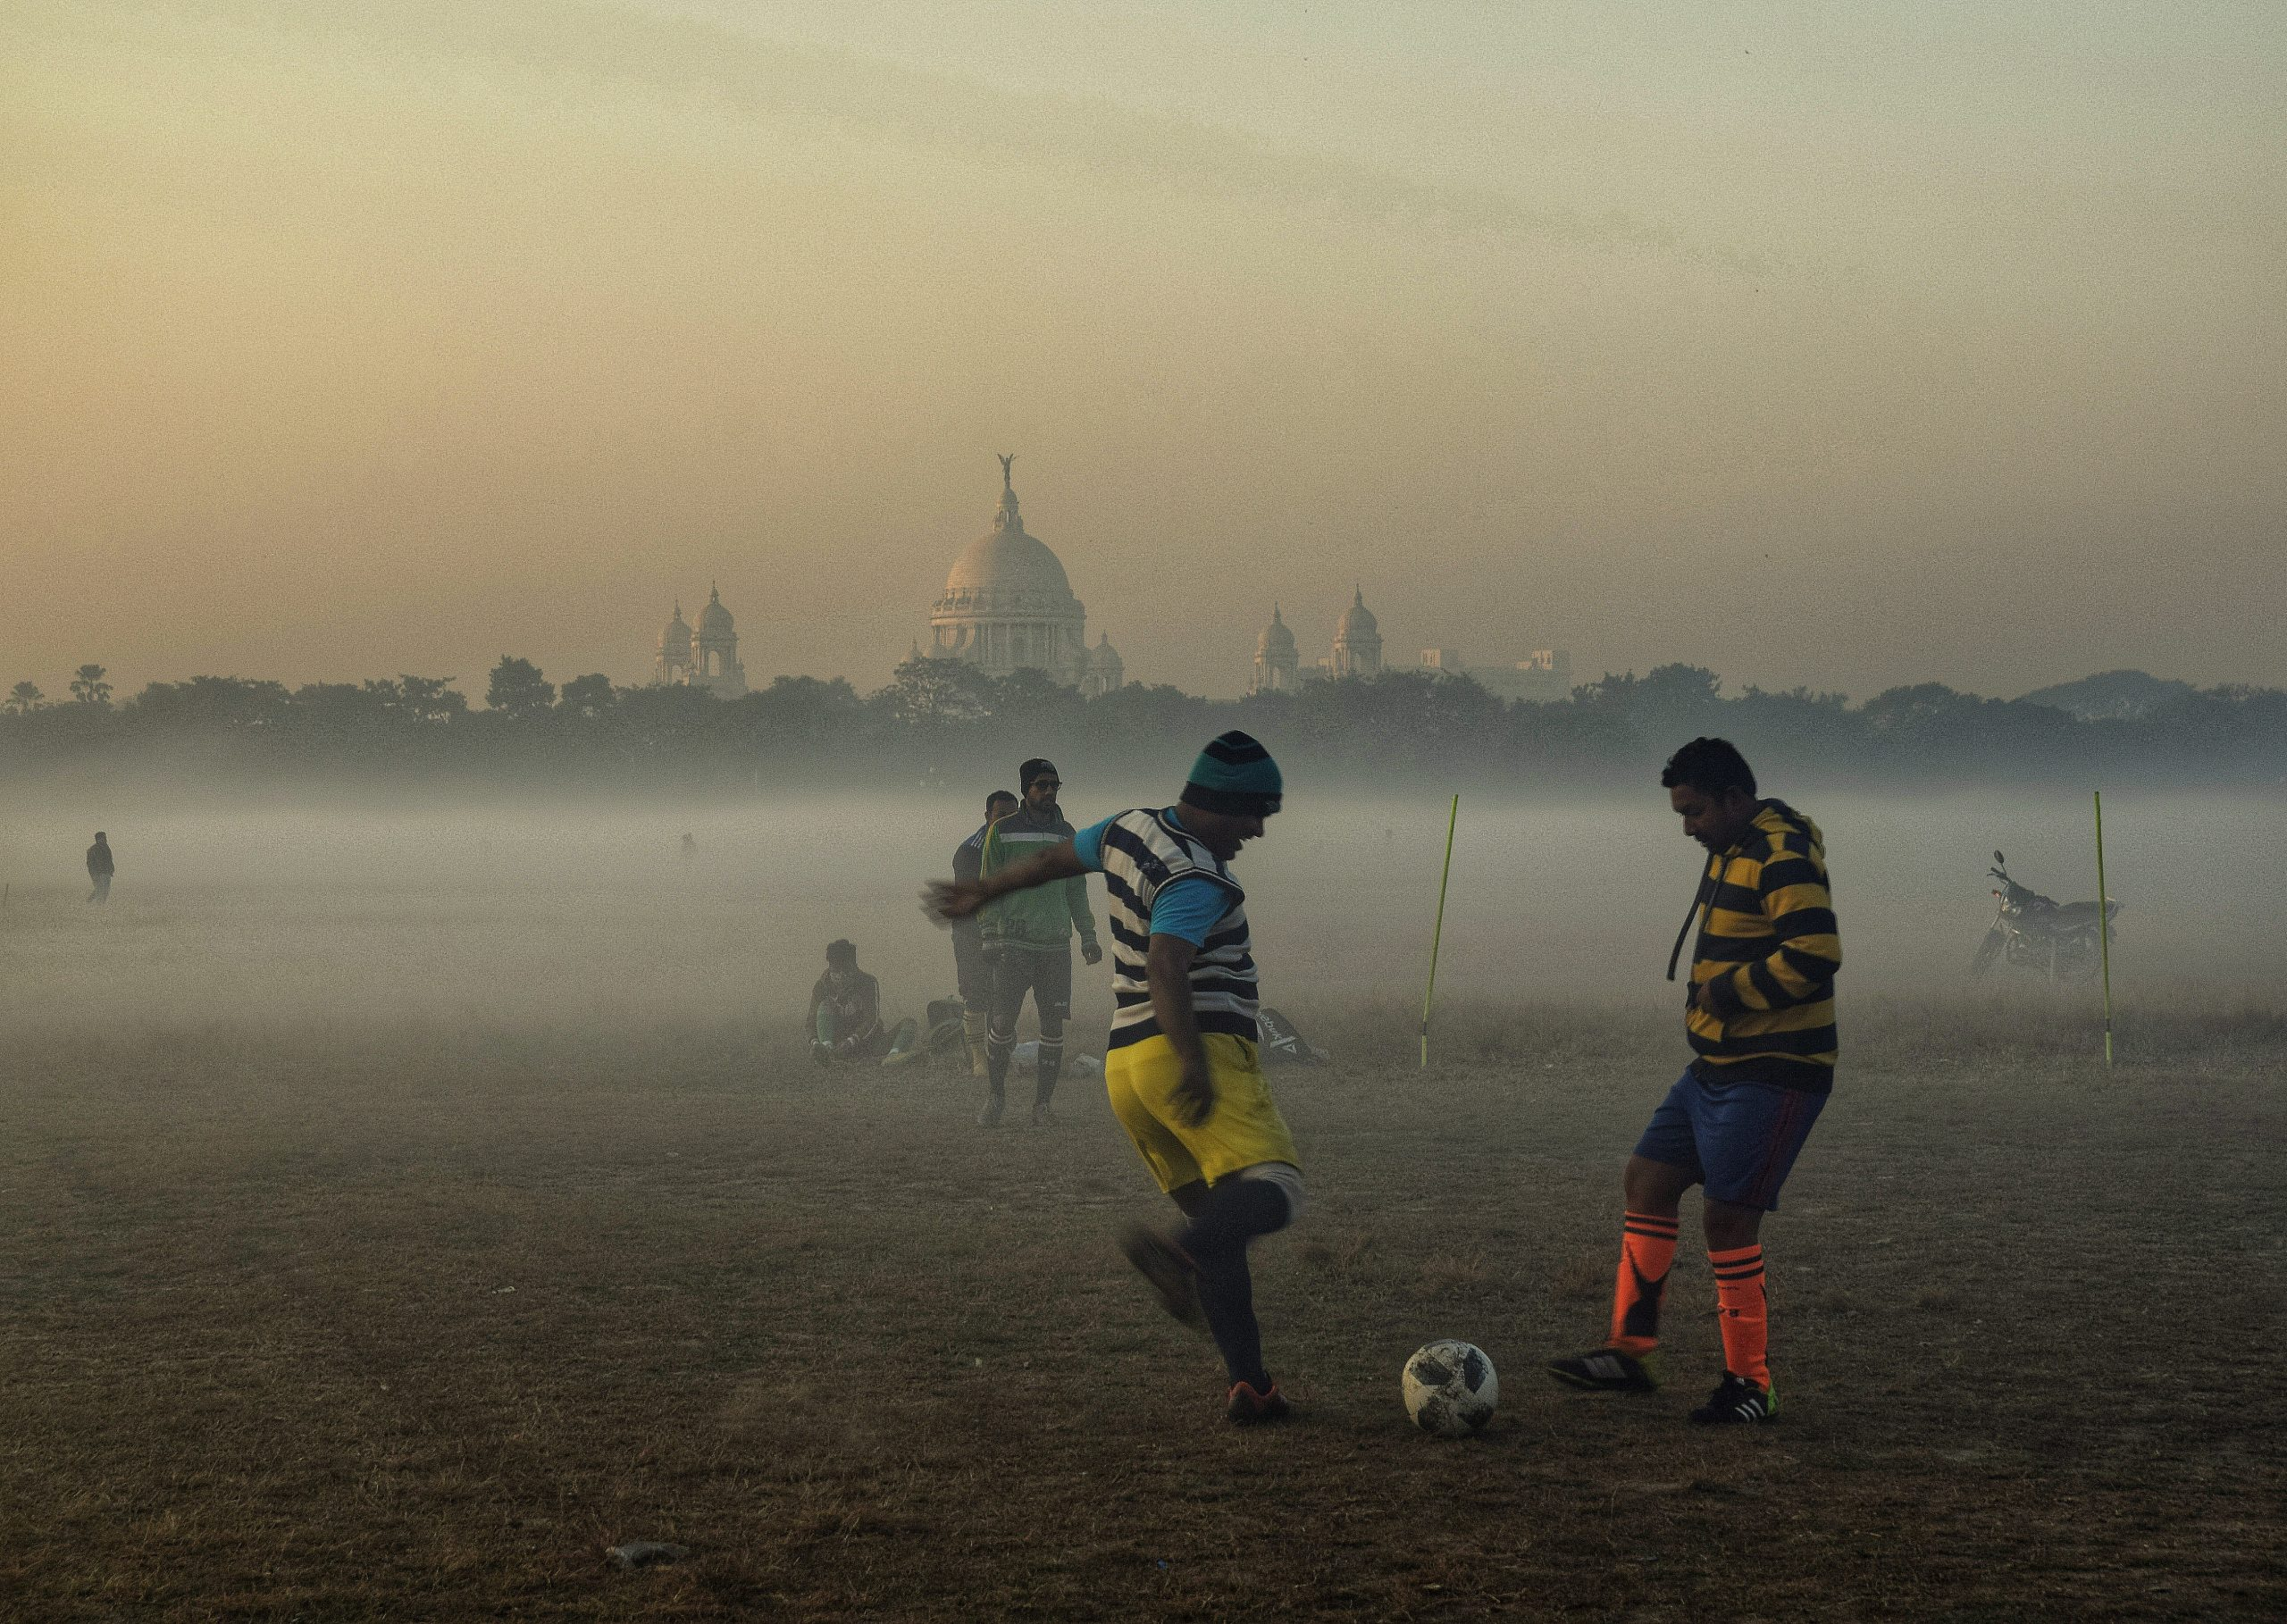 Boys playing football in a ground